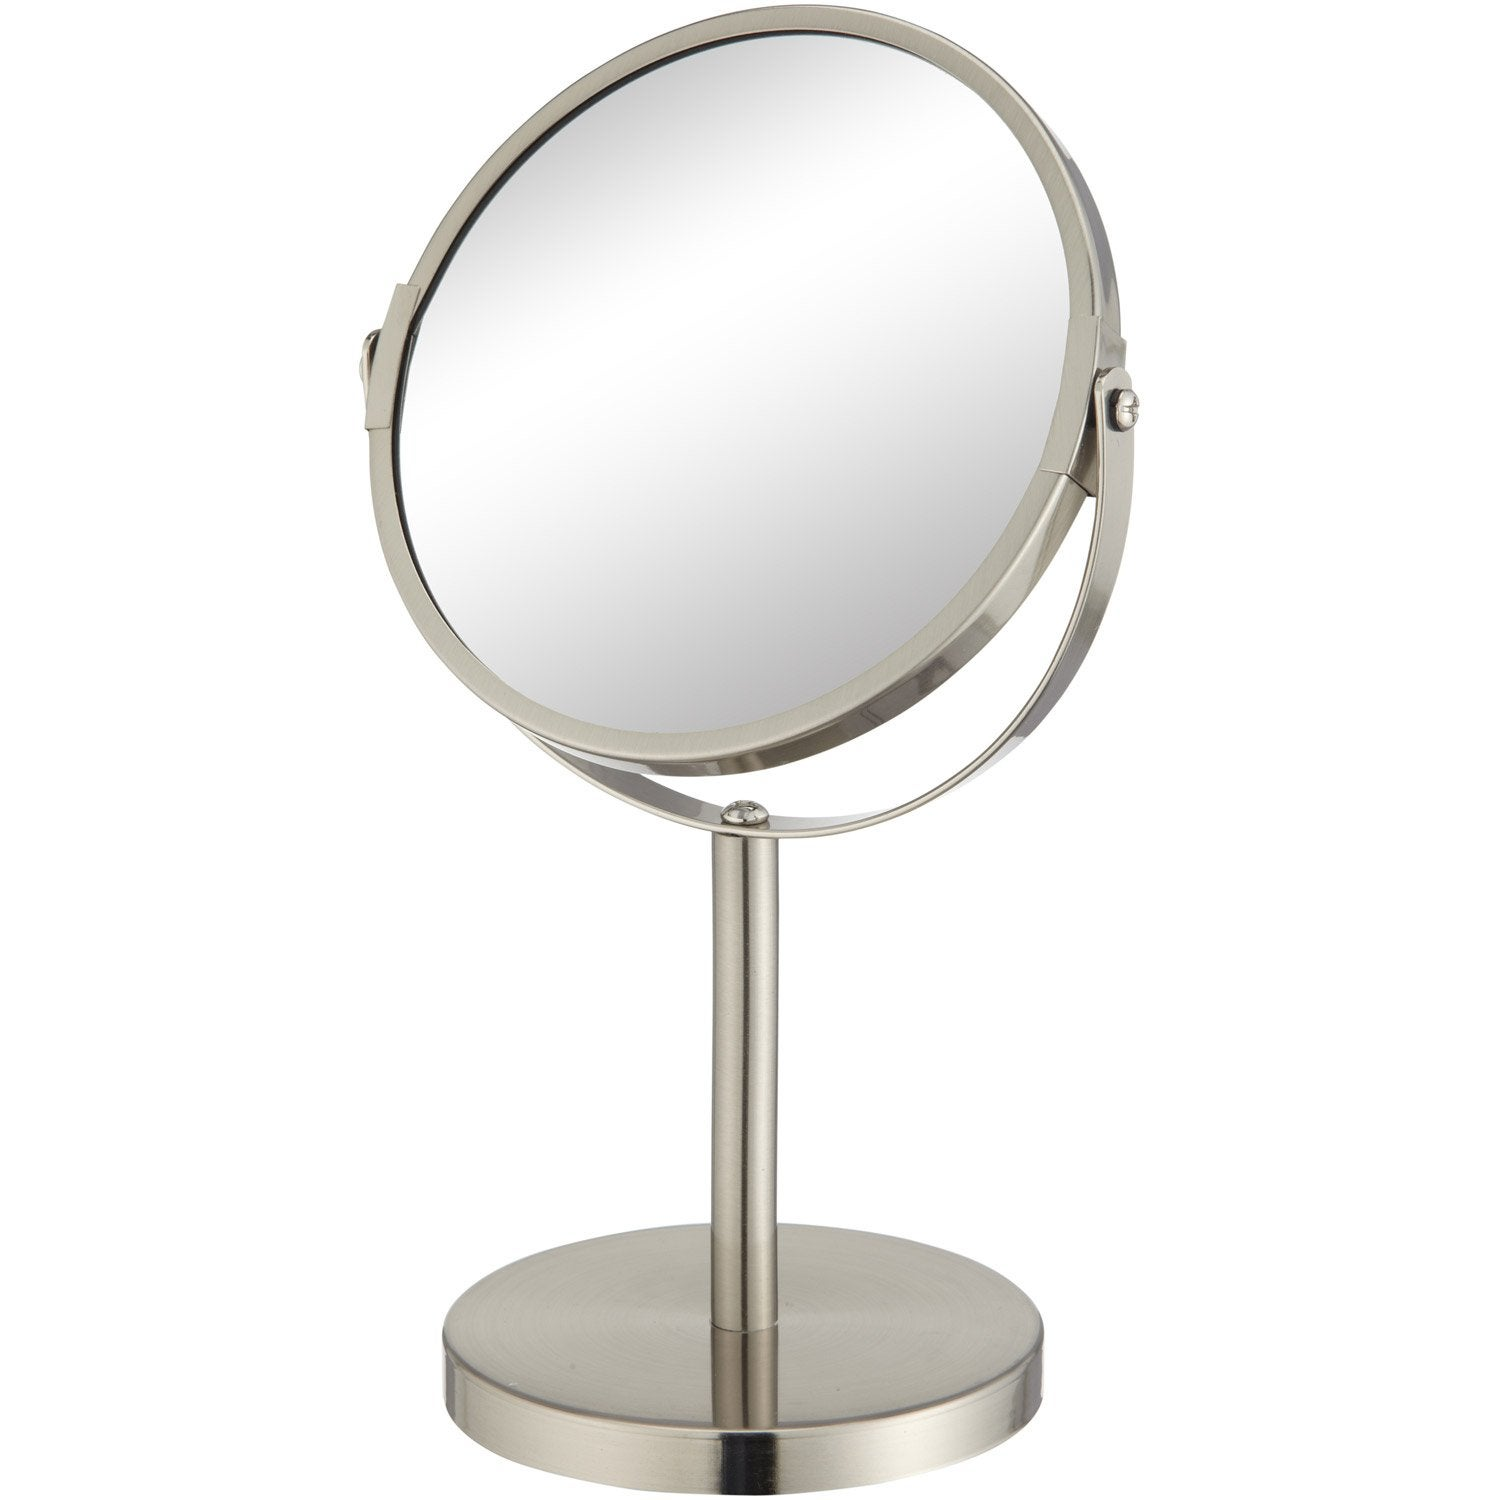 Miroir grossissant sensea beauty poser 33 x 18 cm for Leroy merlin decoupe miroir